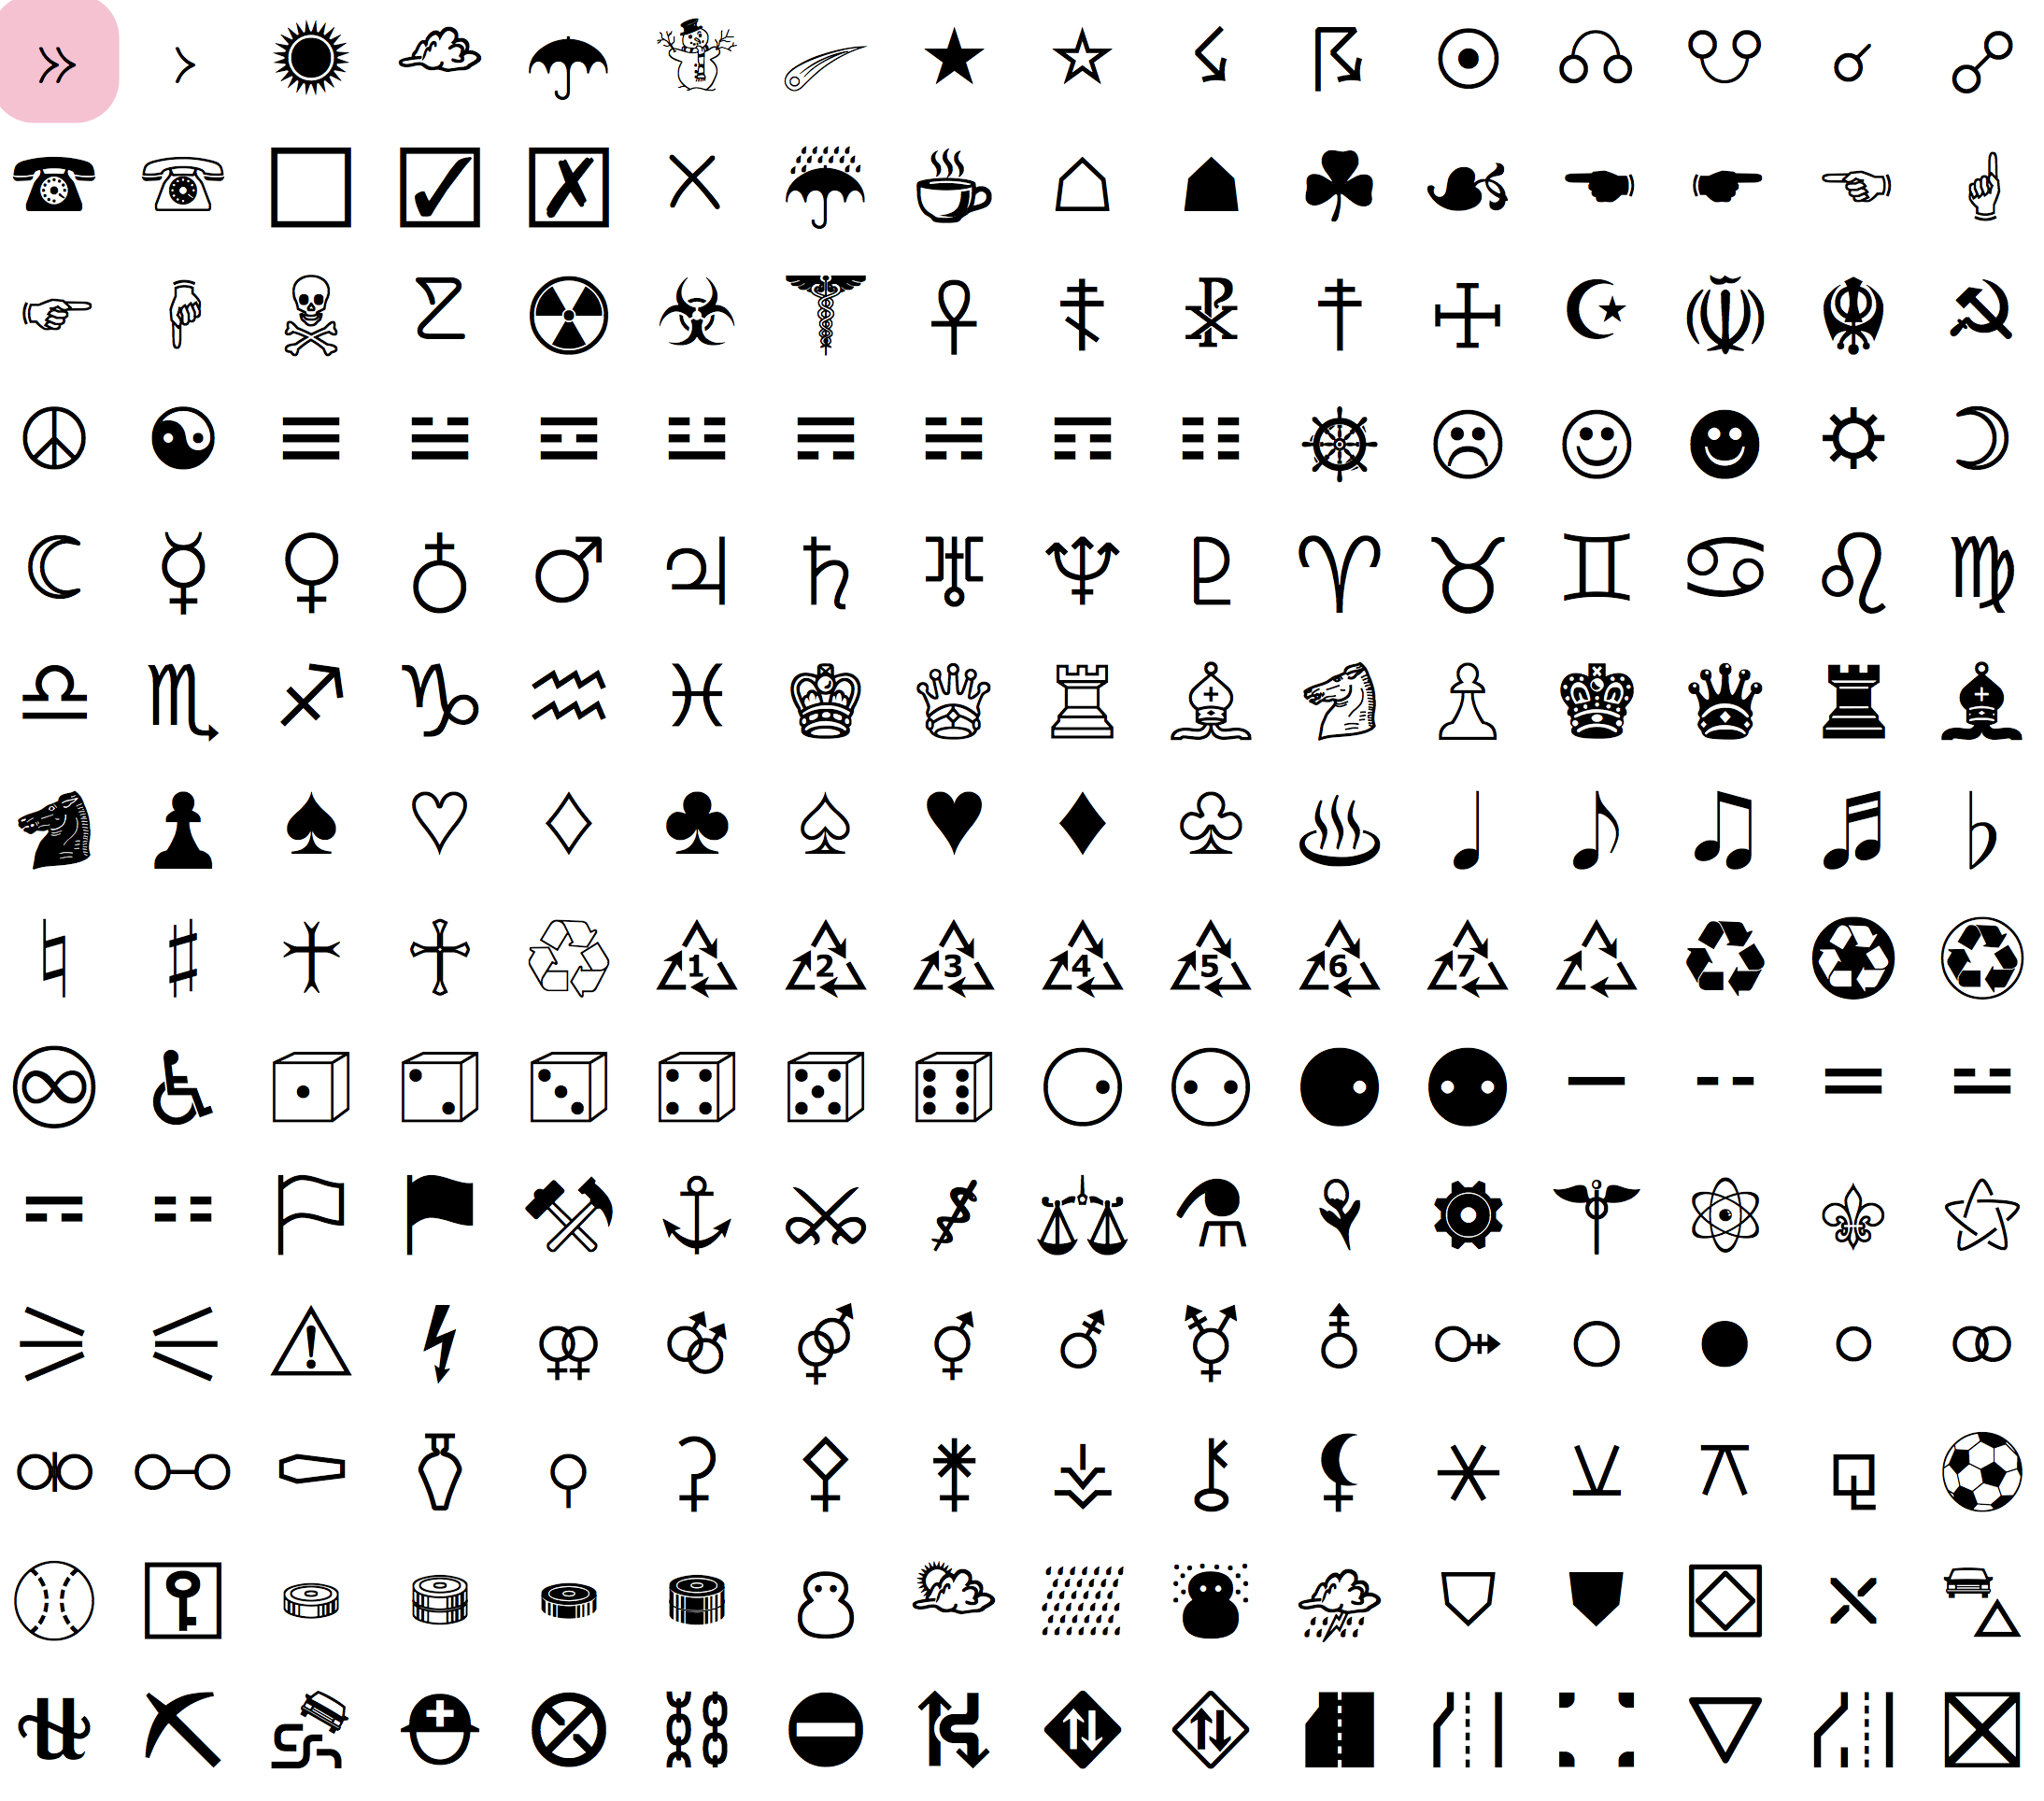 Unicode Fonts For Ancient Scripts